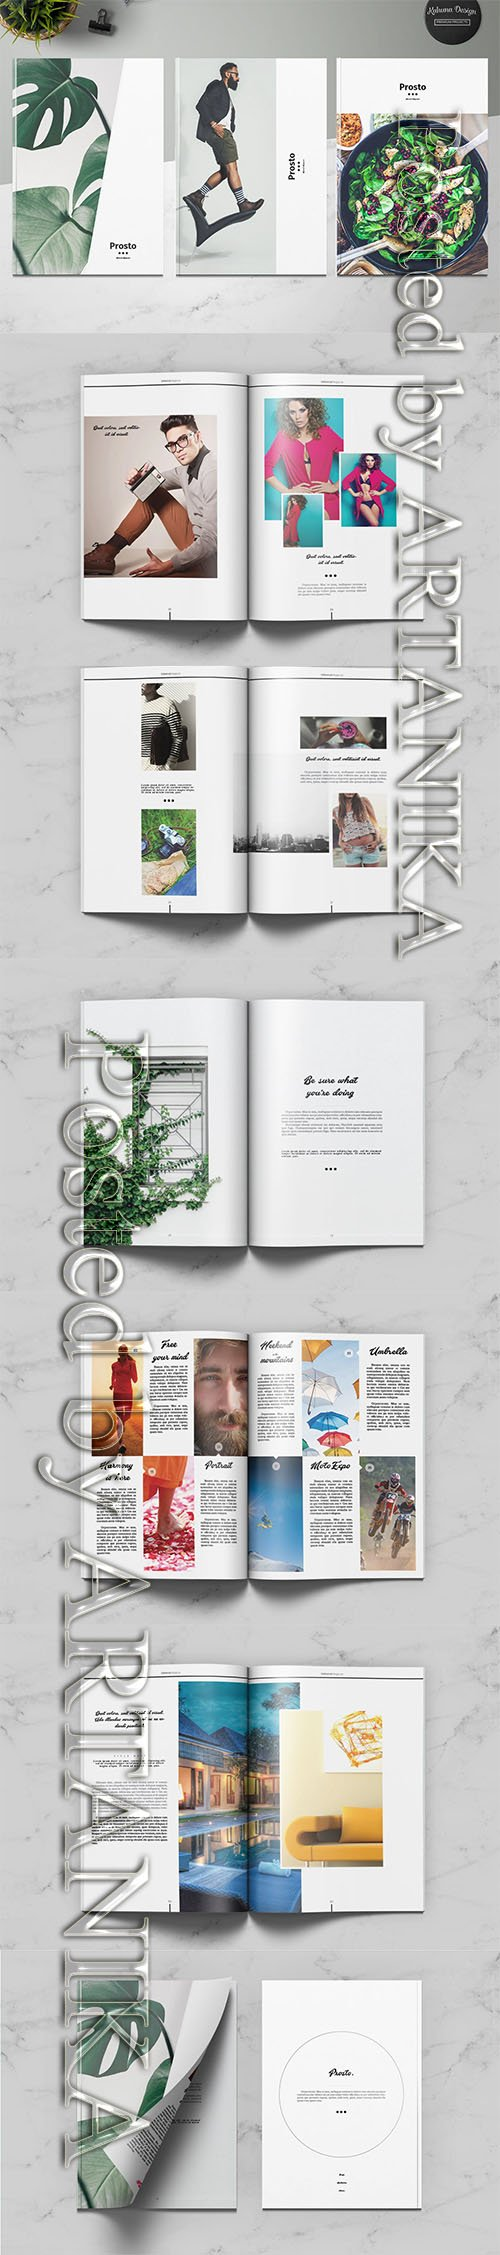 Prosto Universal Magazine Indesign Template